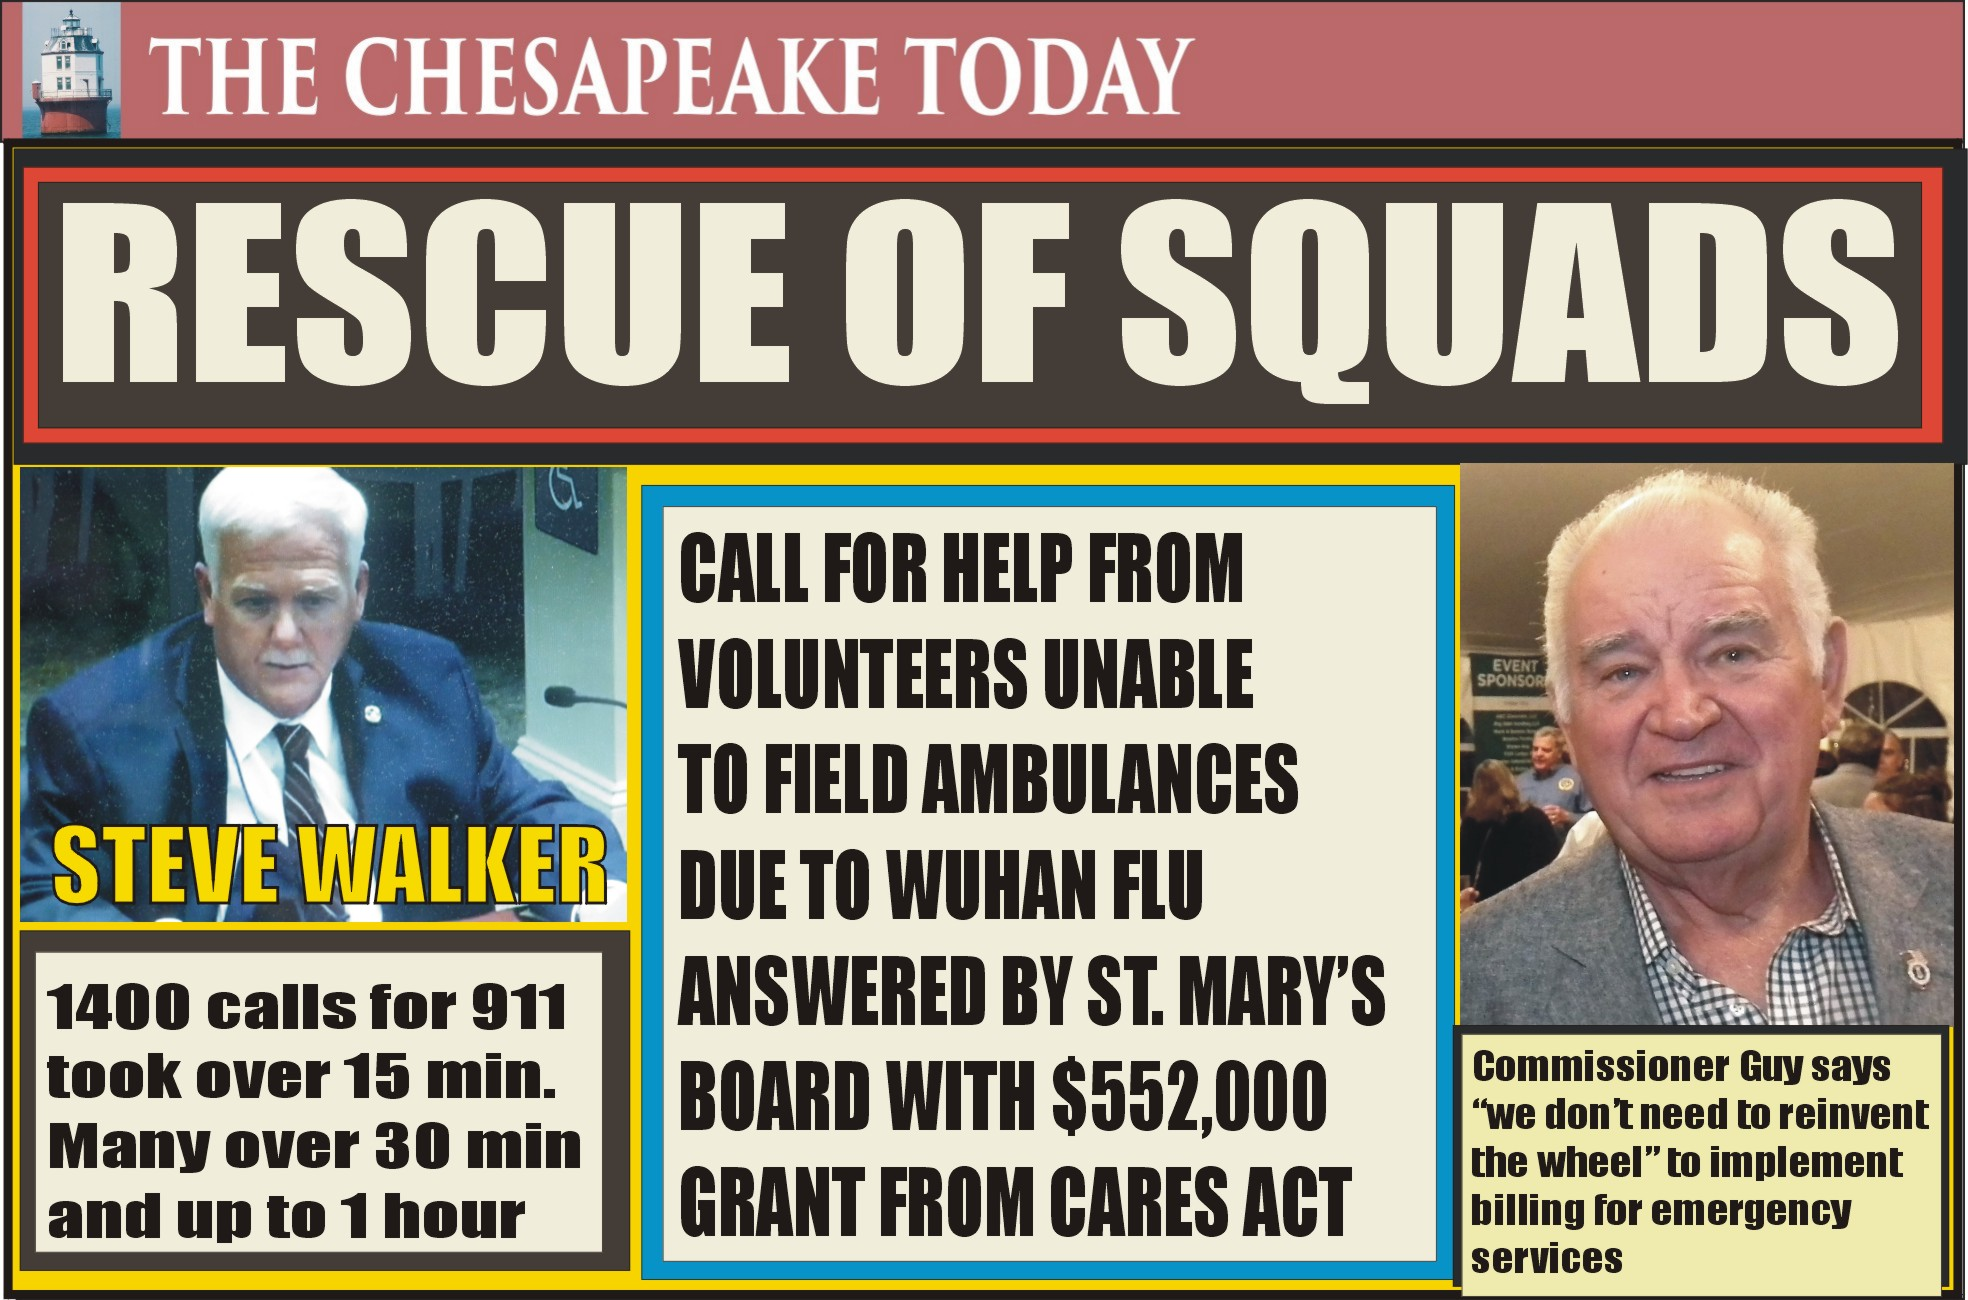 911 RESCUE for Rescue Squads with fewer volunteers to answer calls for medical emergencies; grant will be bandaid for calls for distress with paid EMS supplementing St. Mary's Volunteer Rescue Squads